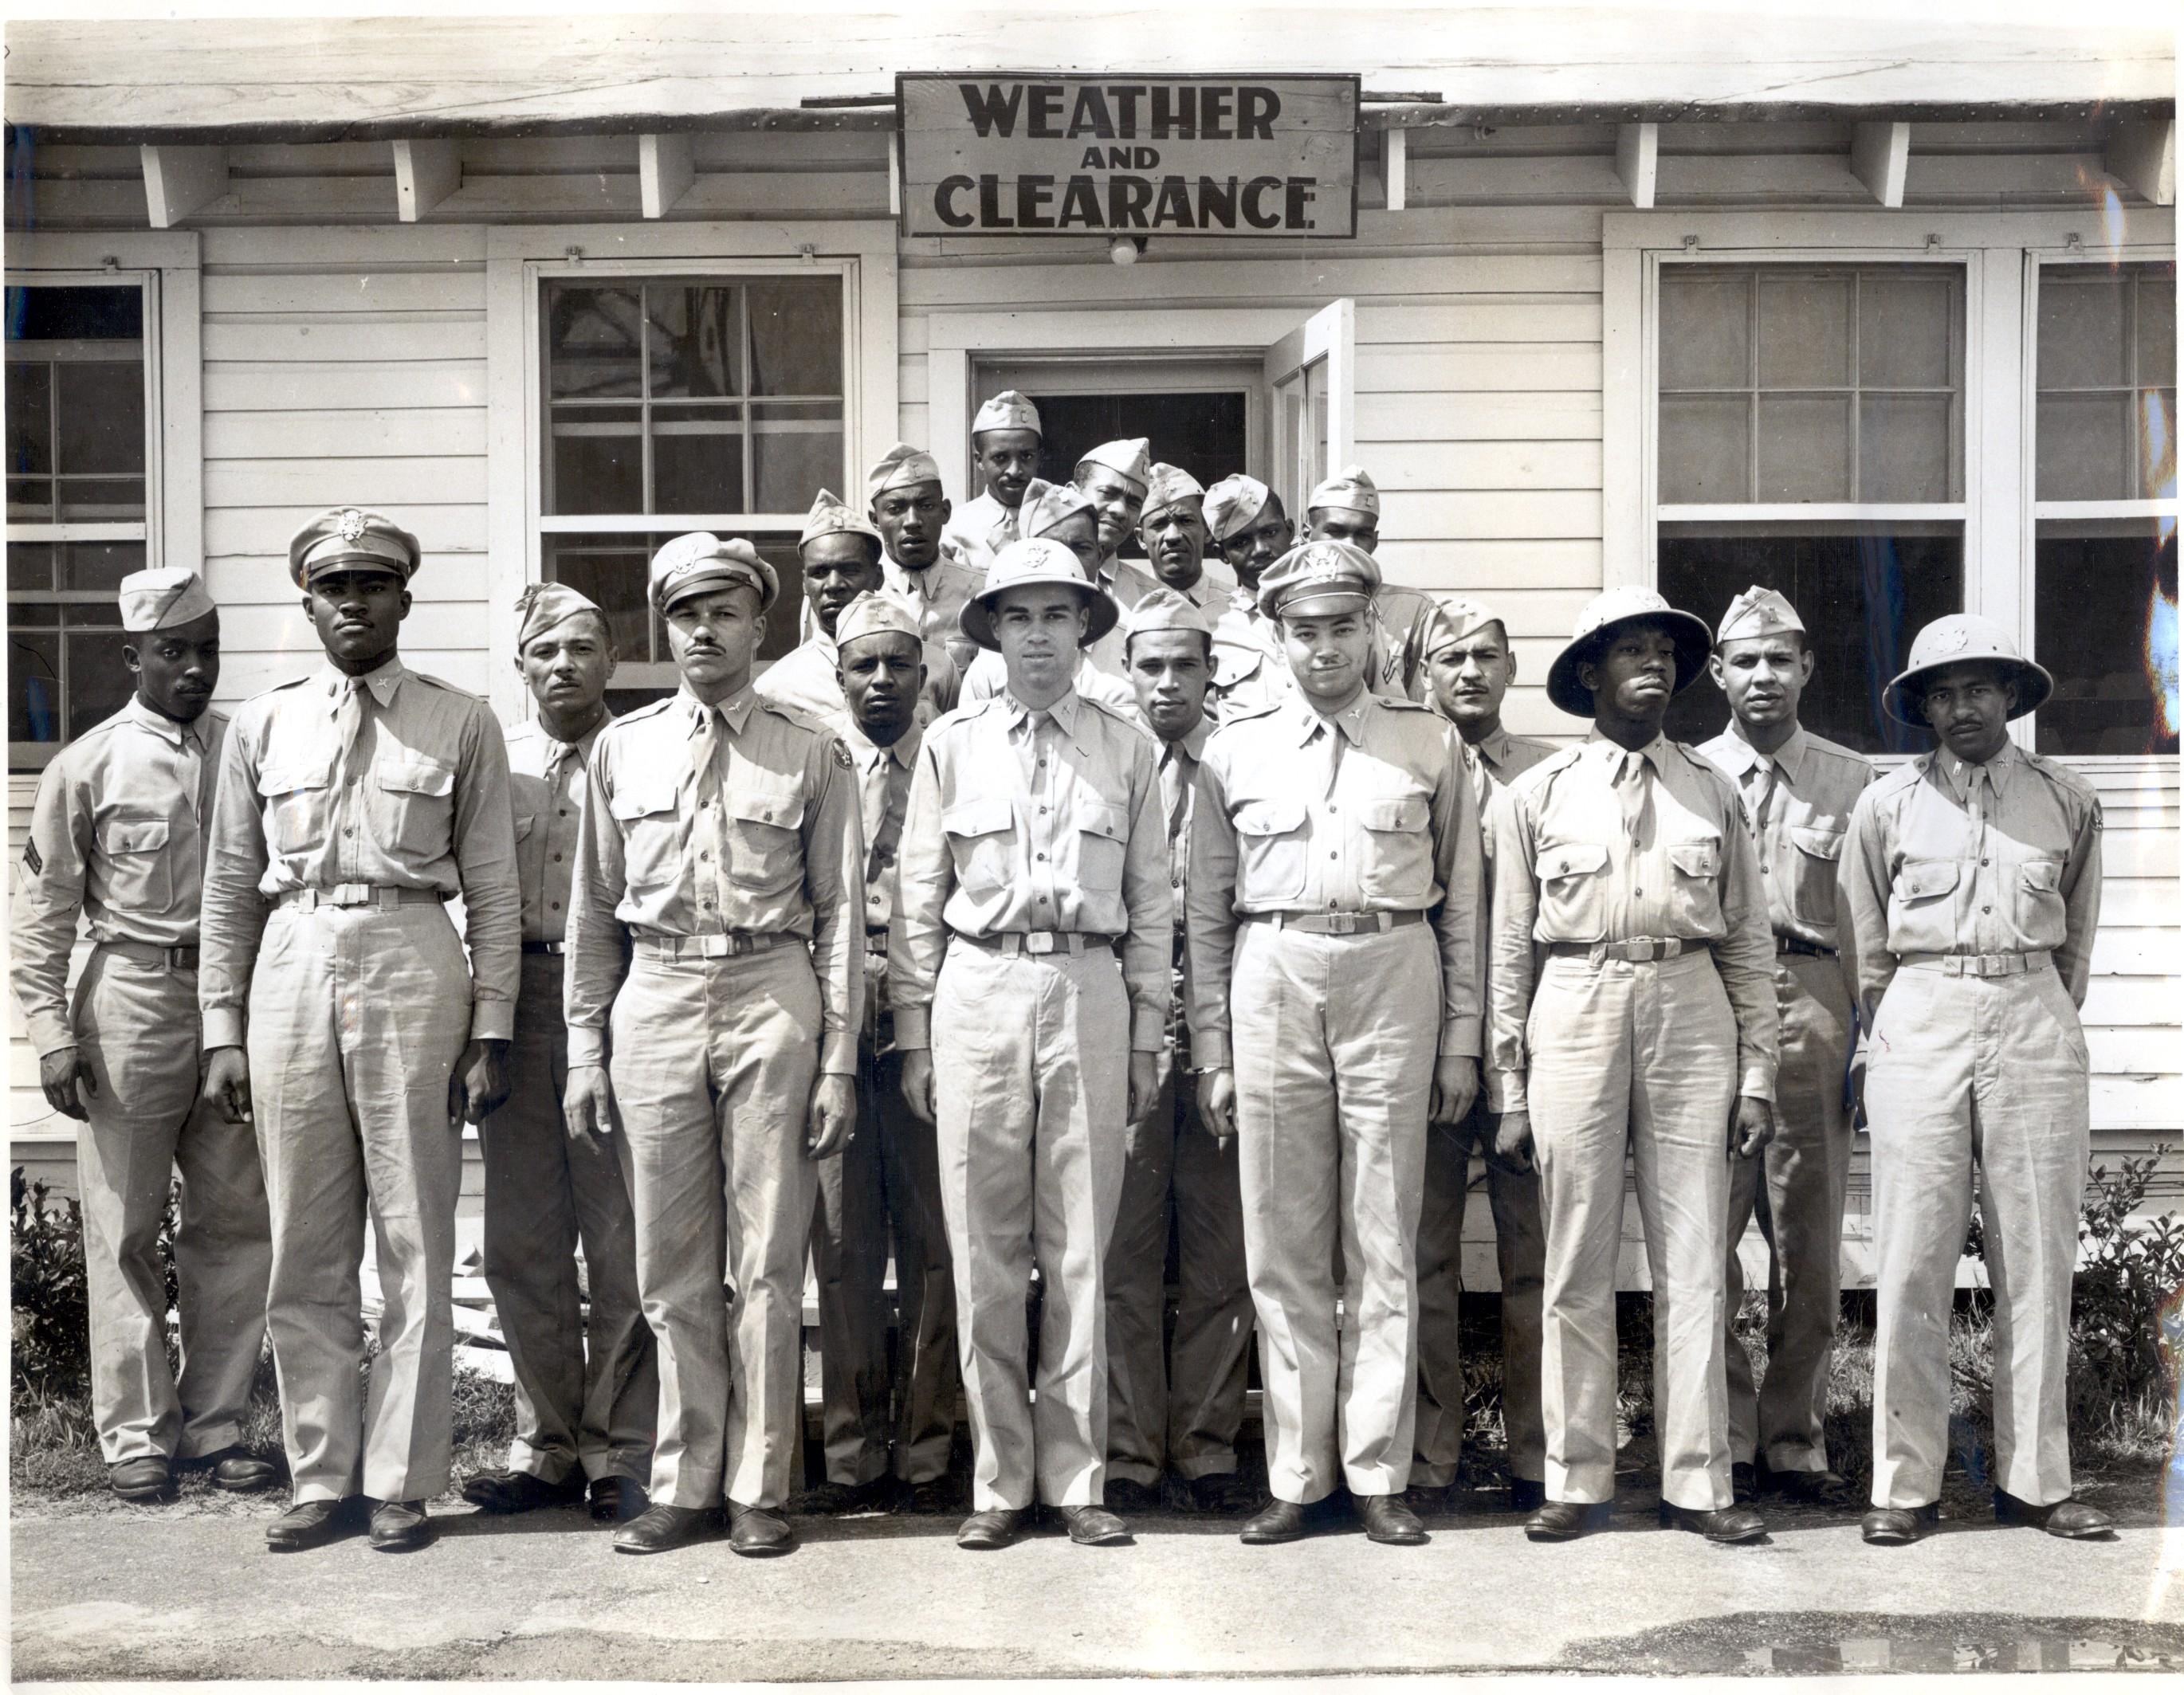 Tuskegee weather detachment, ca. 1944